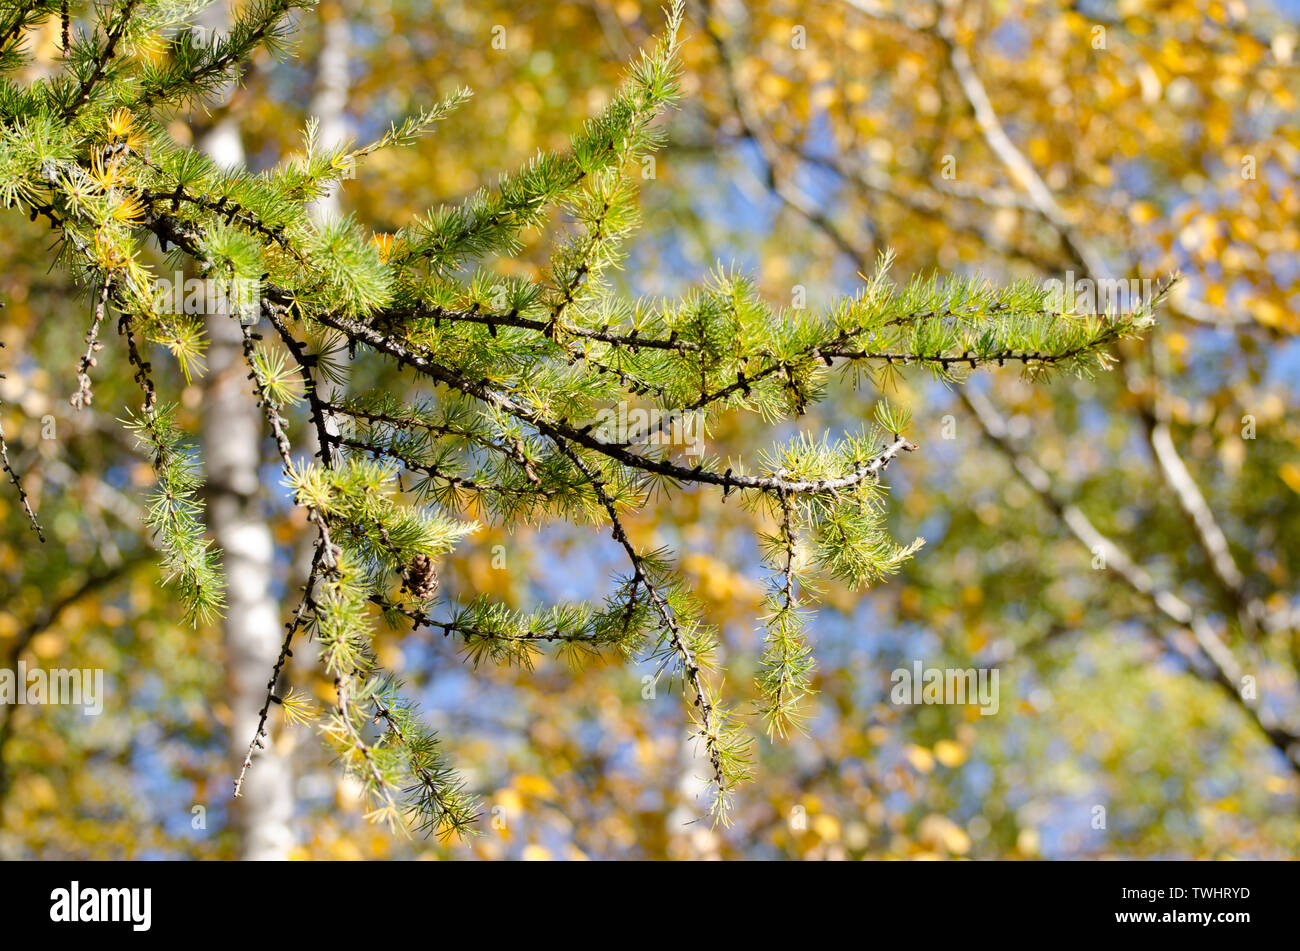 Bright fluffy branches of larix tree. Sunny photo of larch tree. Fall sunny day. - Stock Image